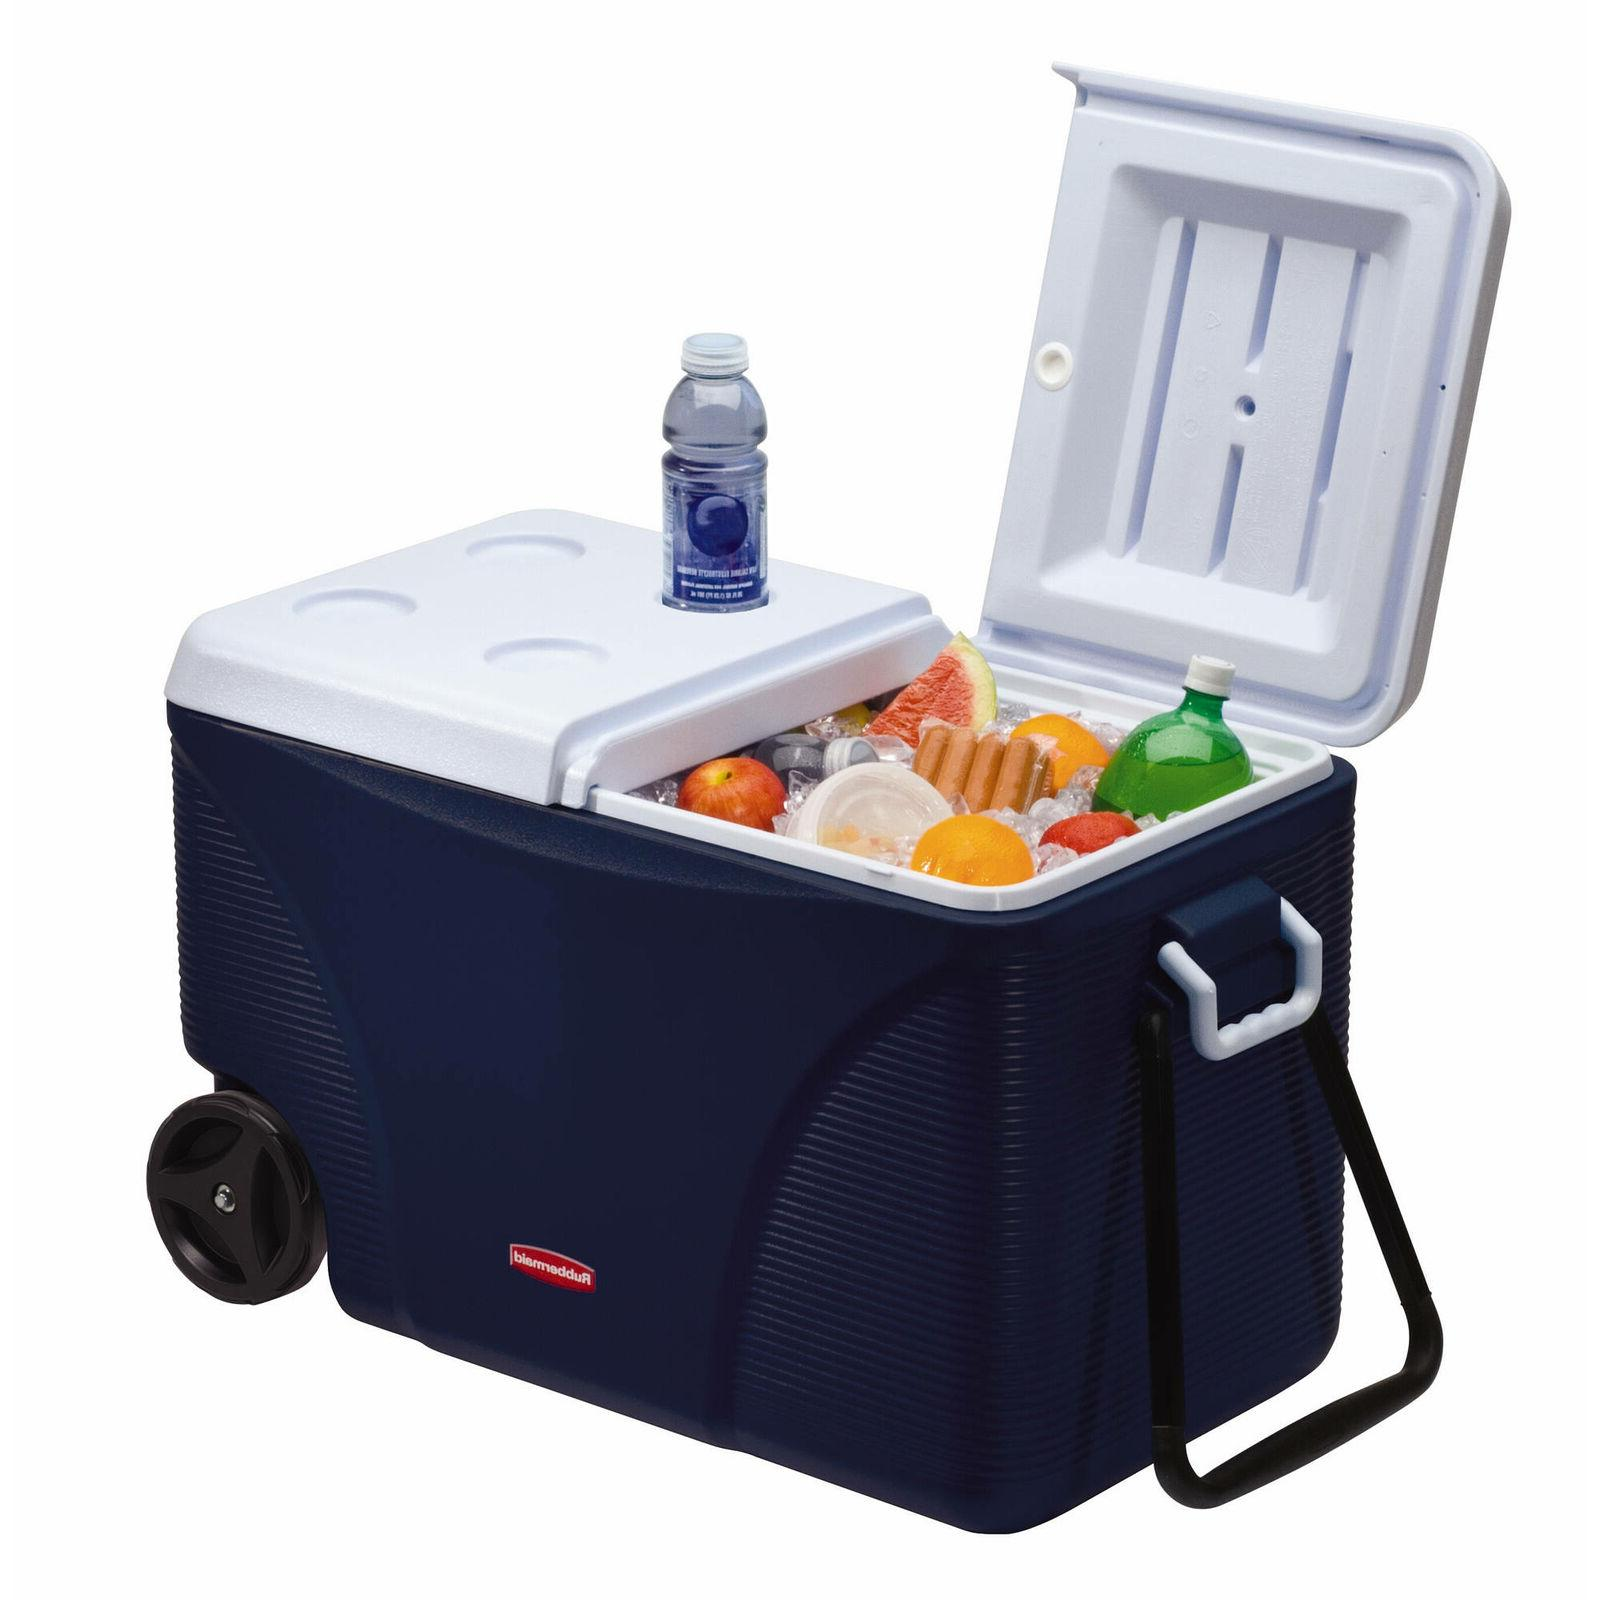 Rubbermaid 75 qt 5-Day Wheeled Ice Chest Blue Outdoor Family